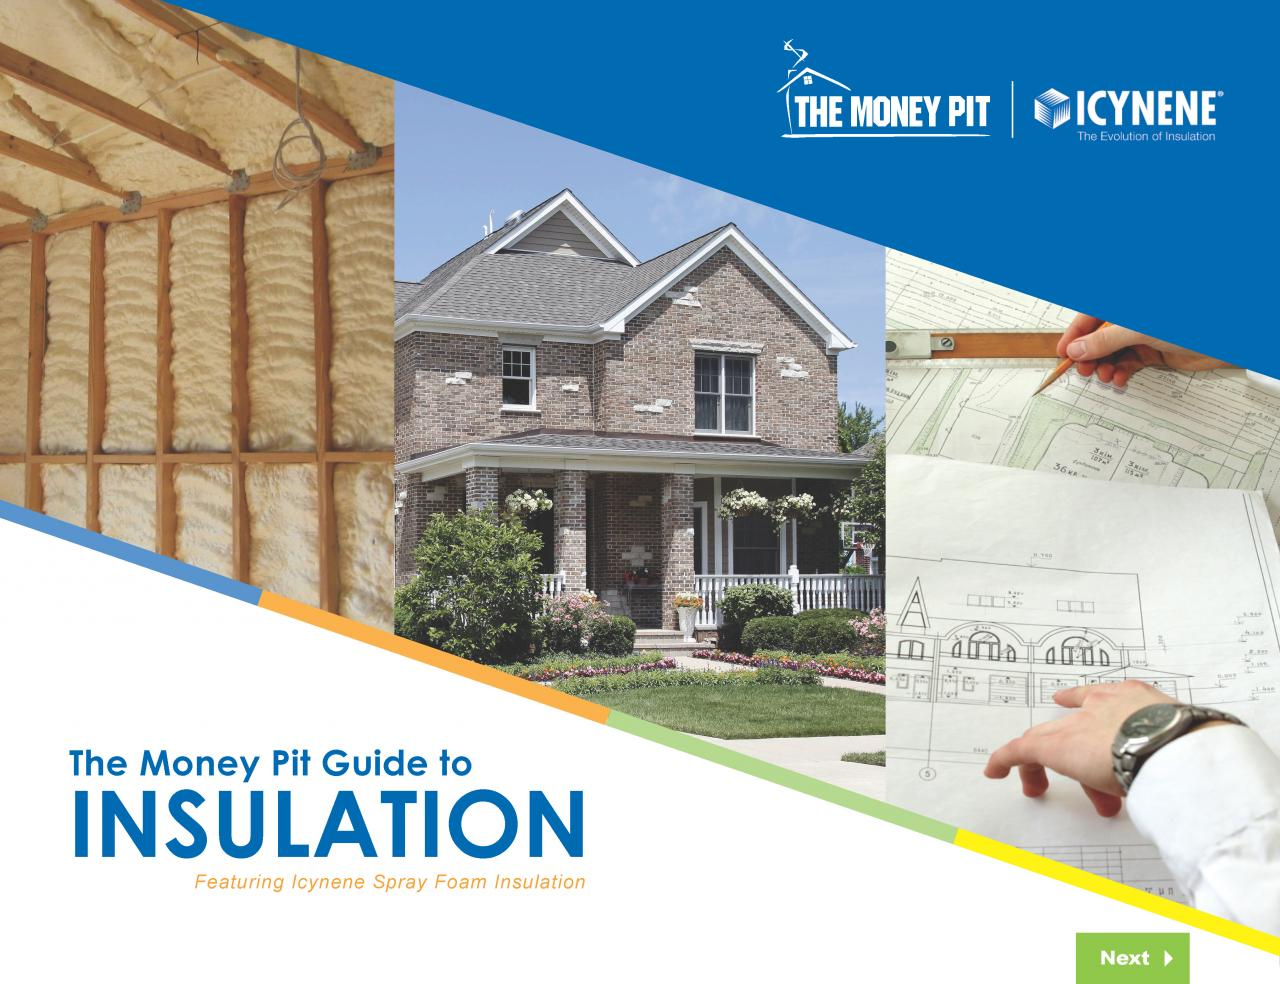 The Money Pit Guide to Insulation